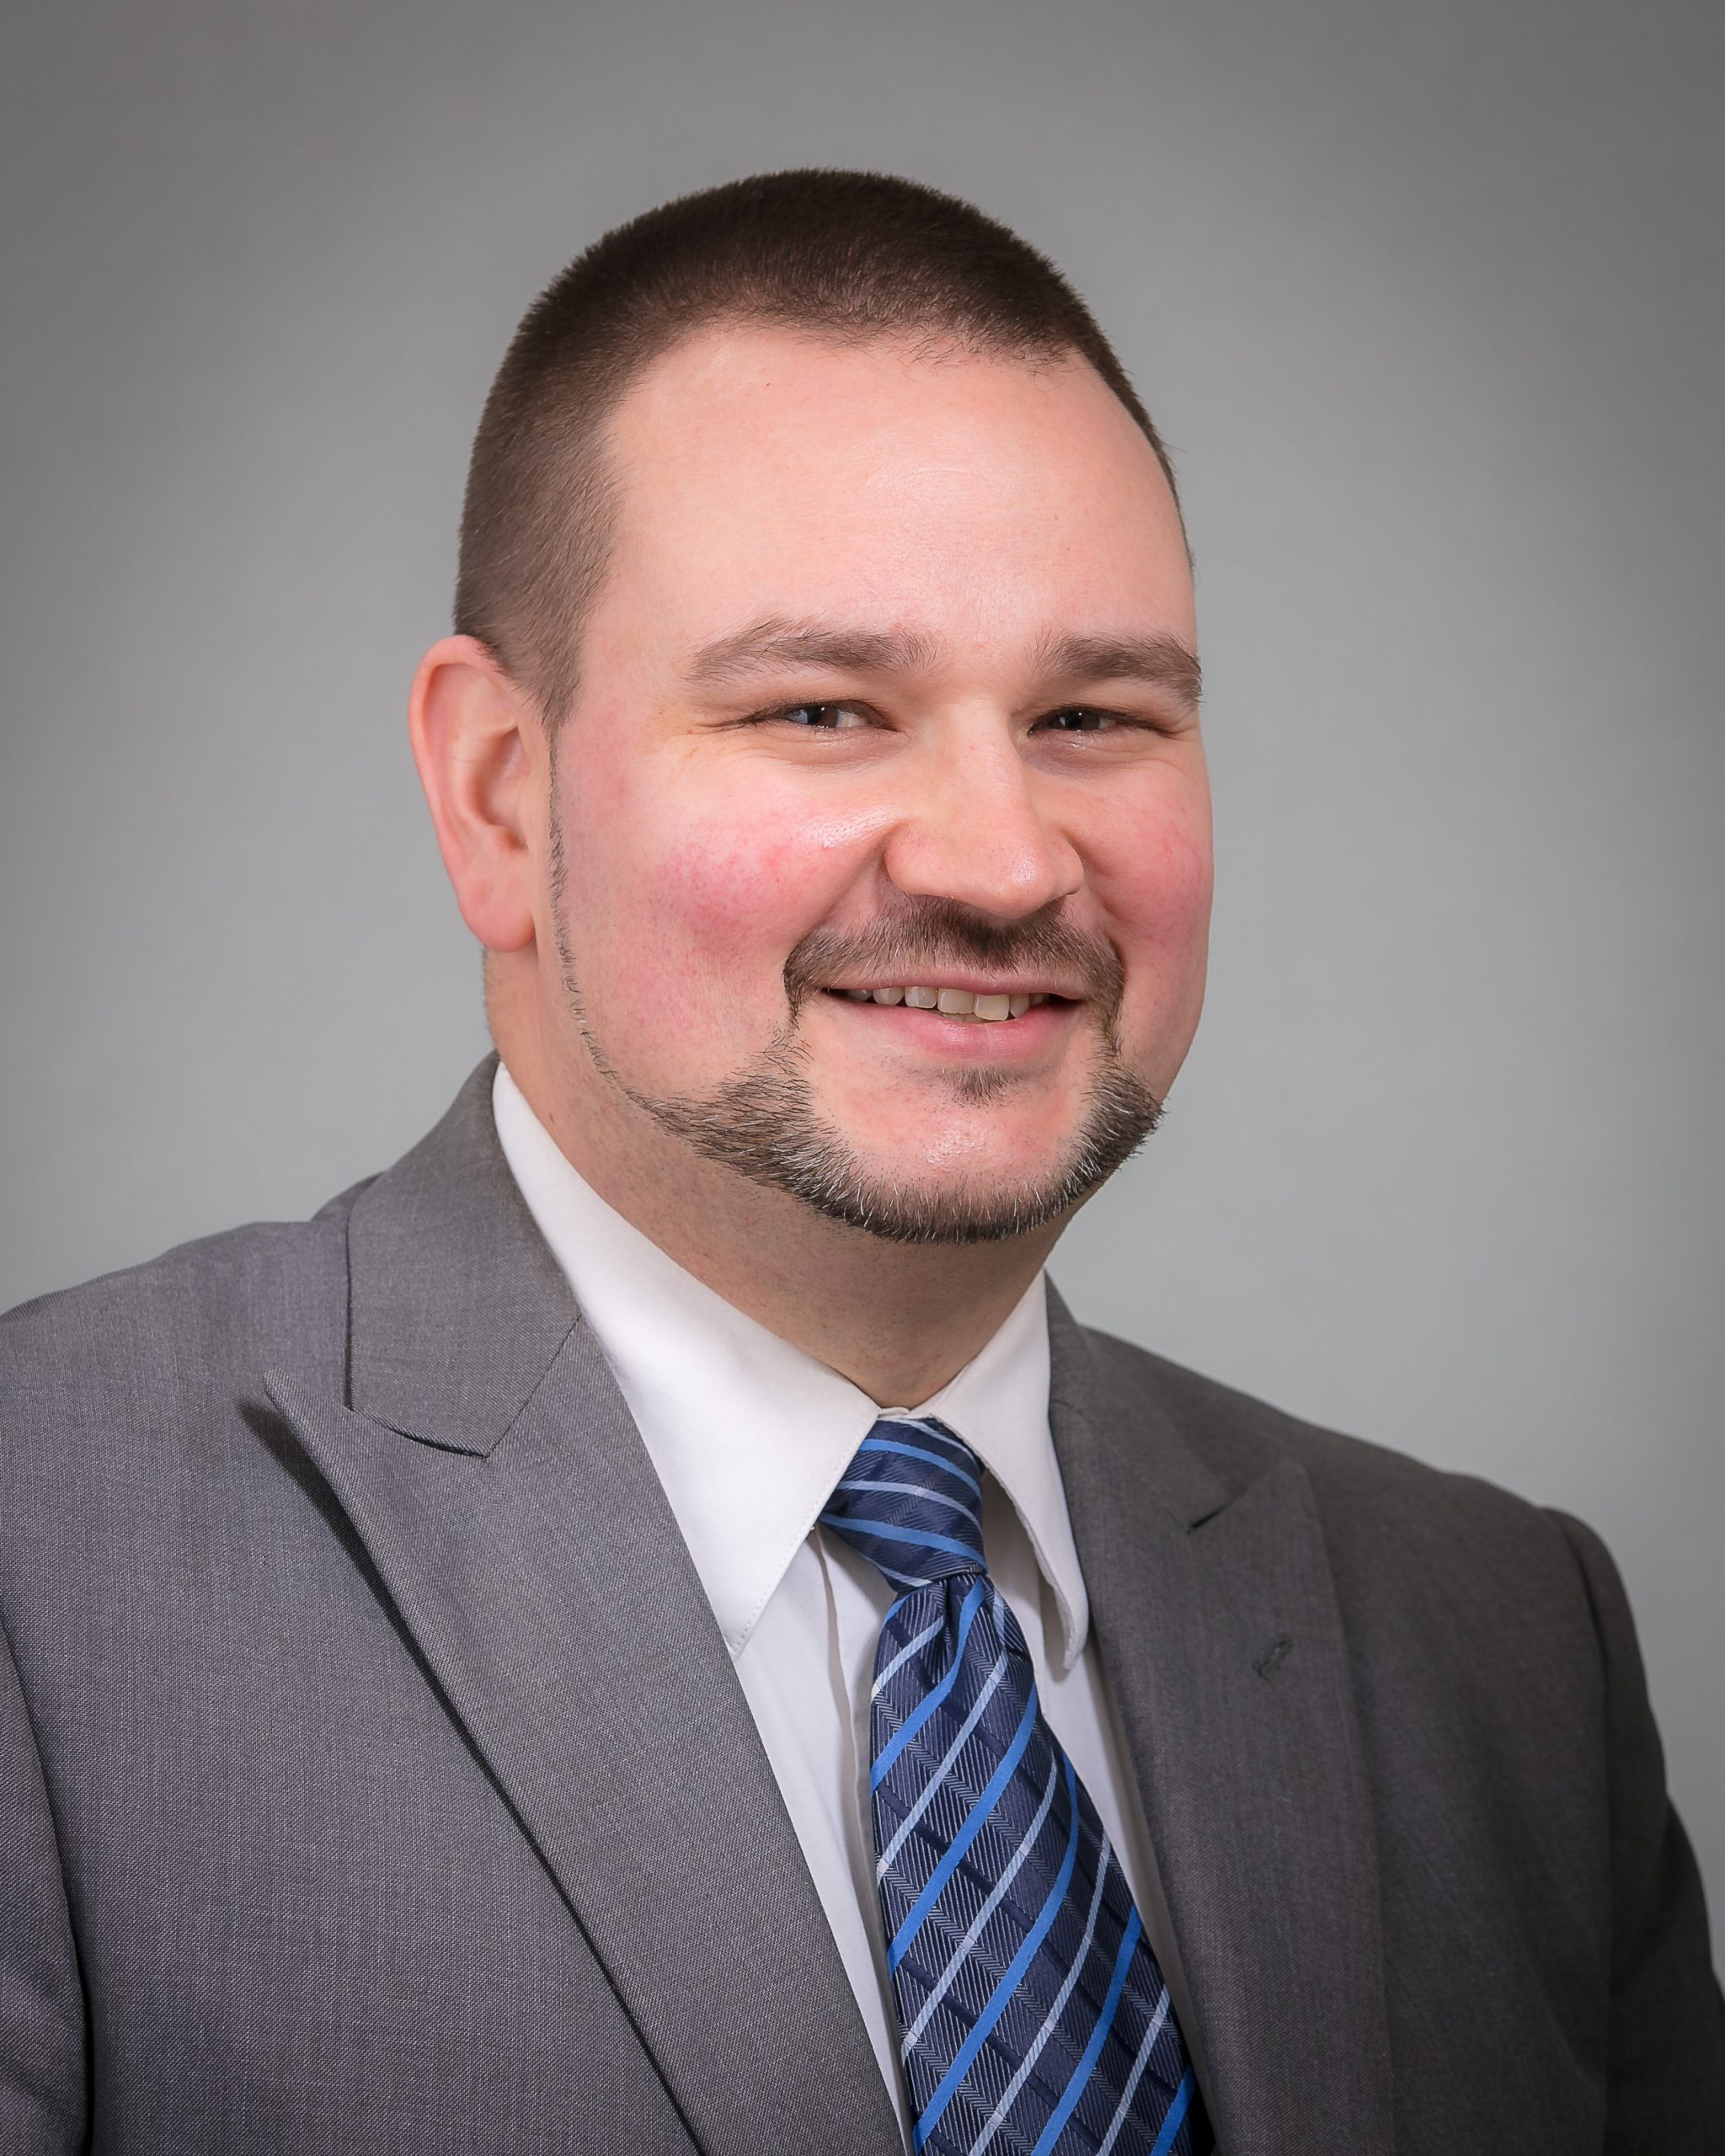 Savings Bank of Walpole Welcomes New Hire to Their Commercial Lending Team